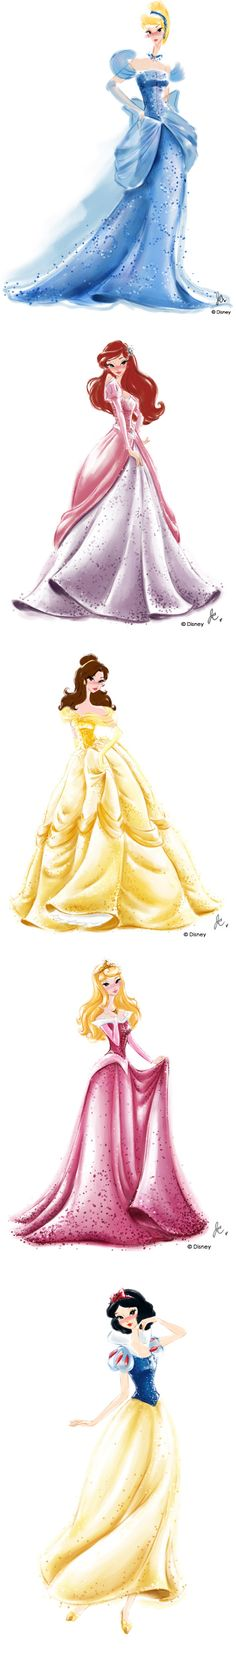 Disney Princess Watercolors